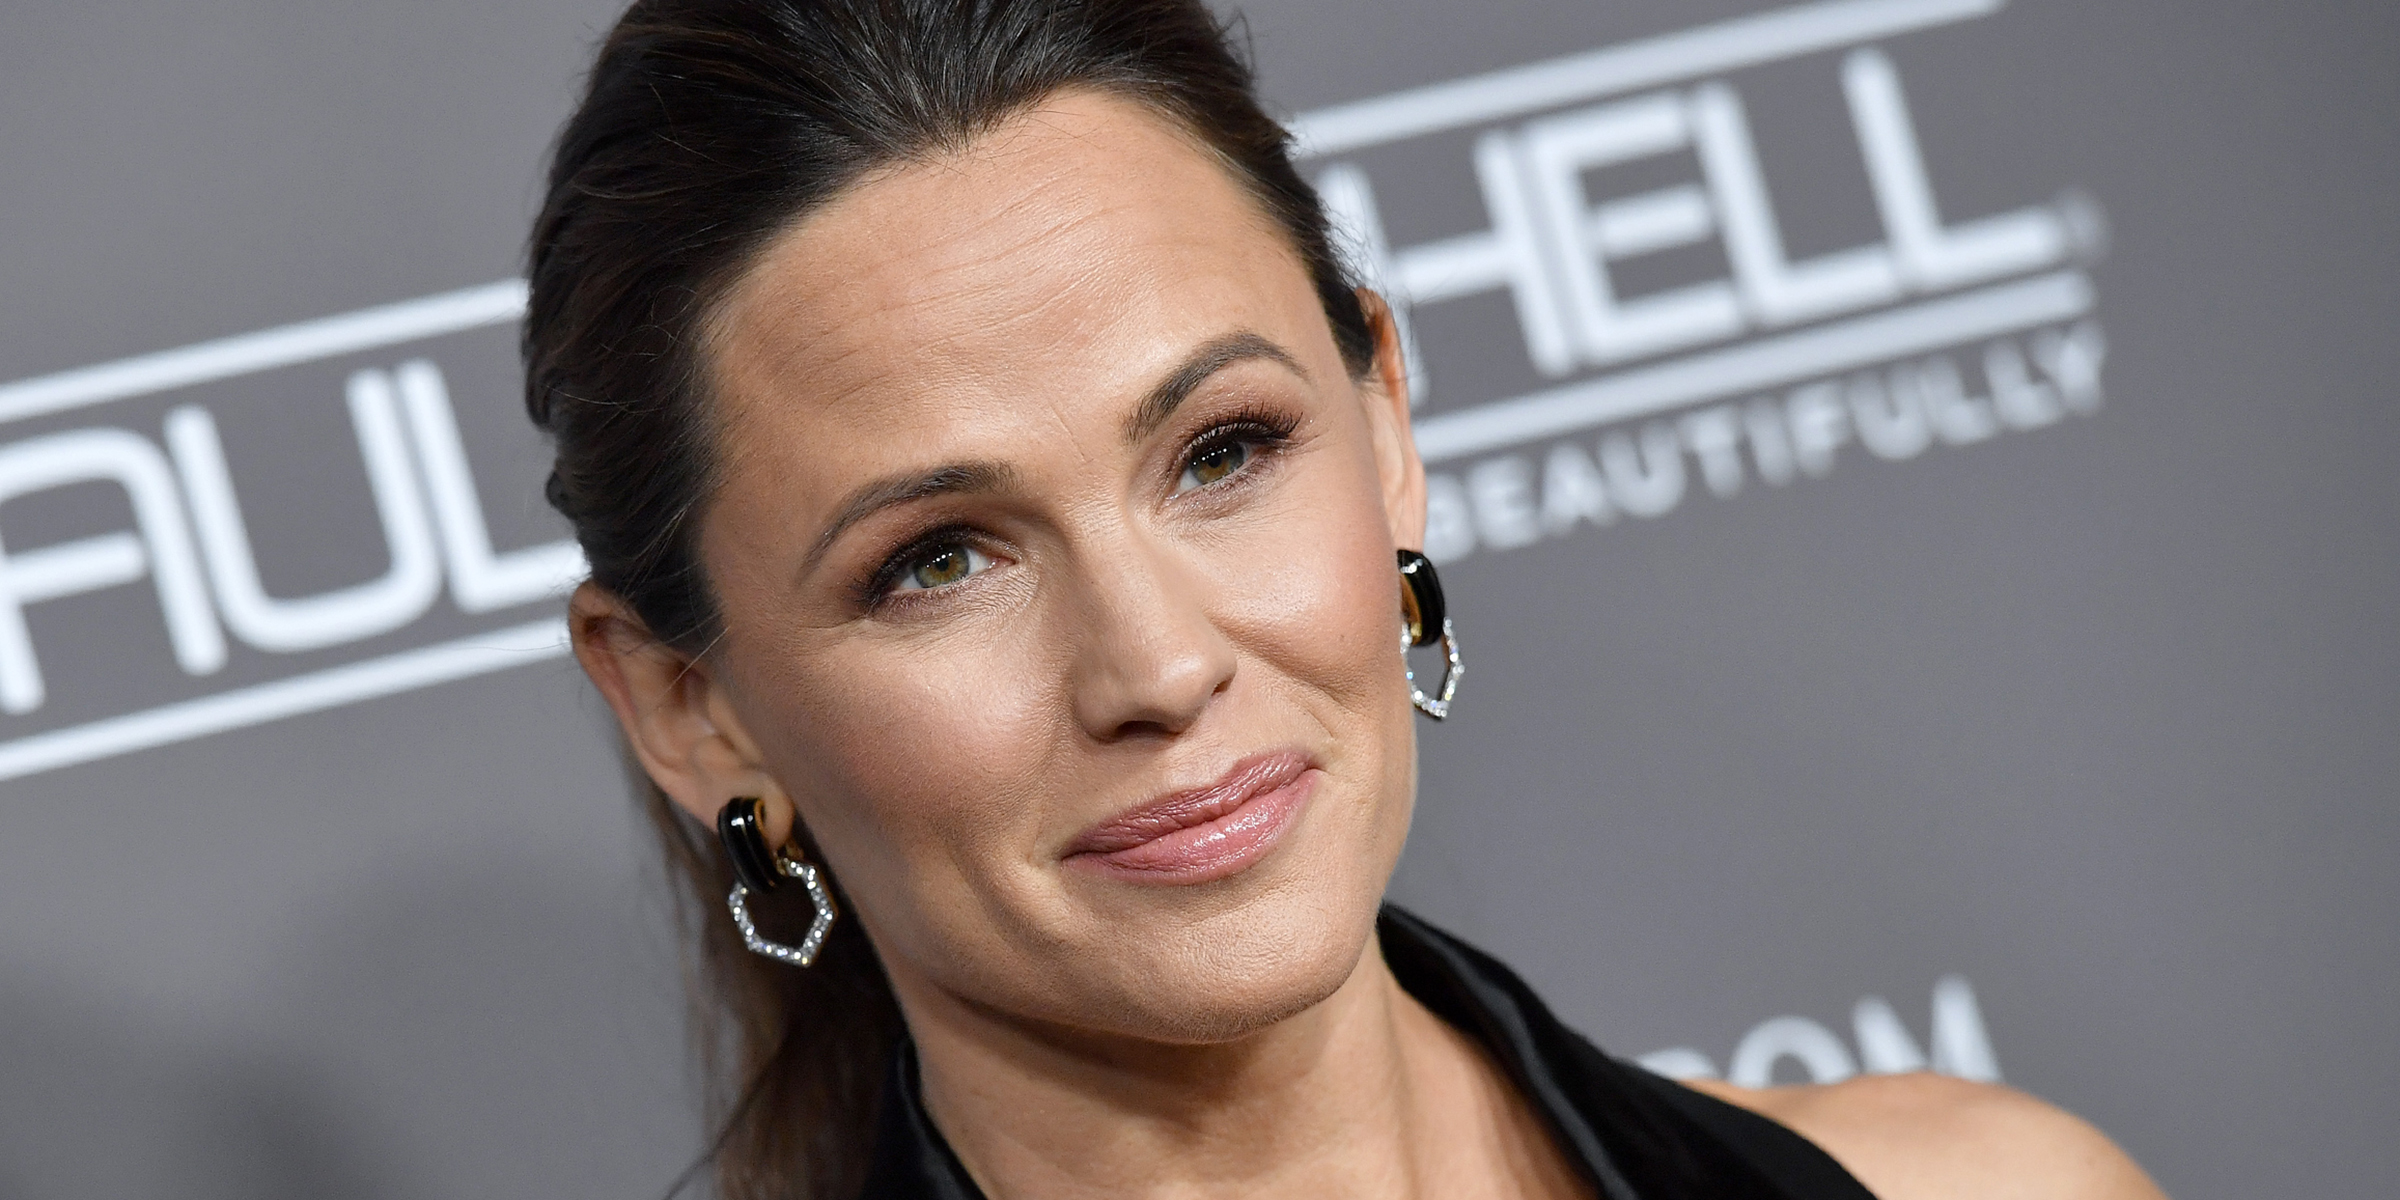 Jennifer Garner reveals the 1 comment she hears from fans 'every day'